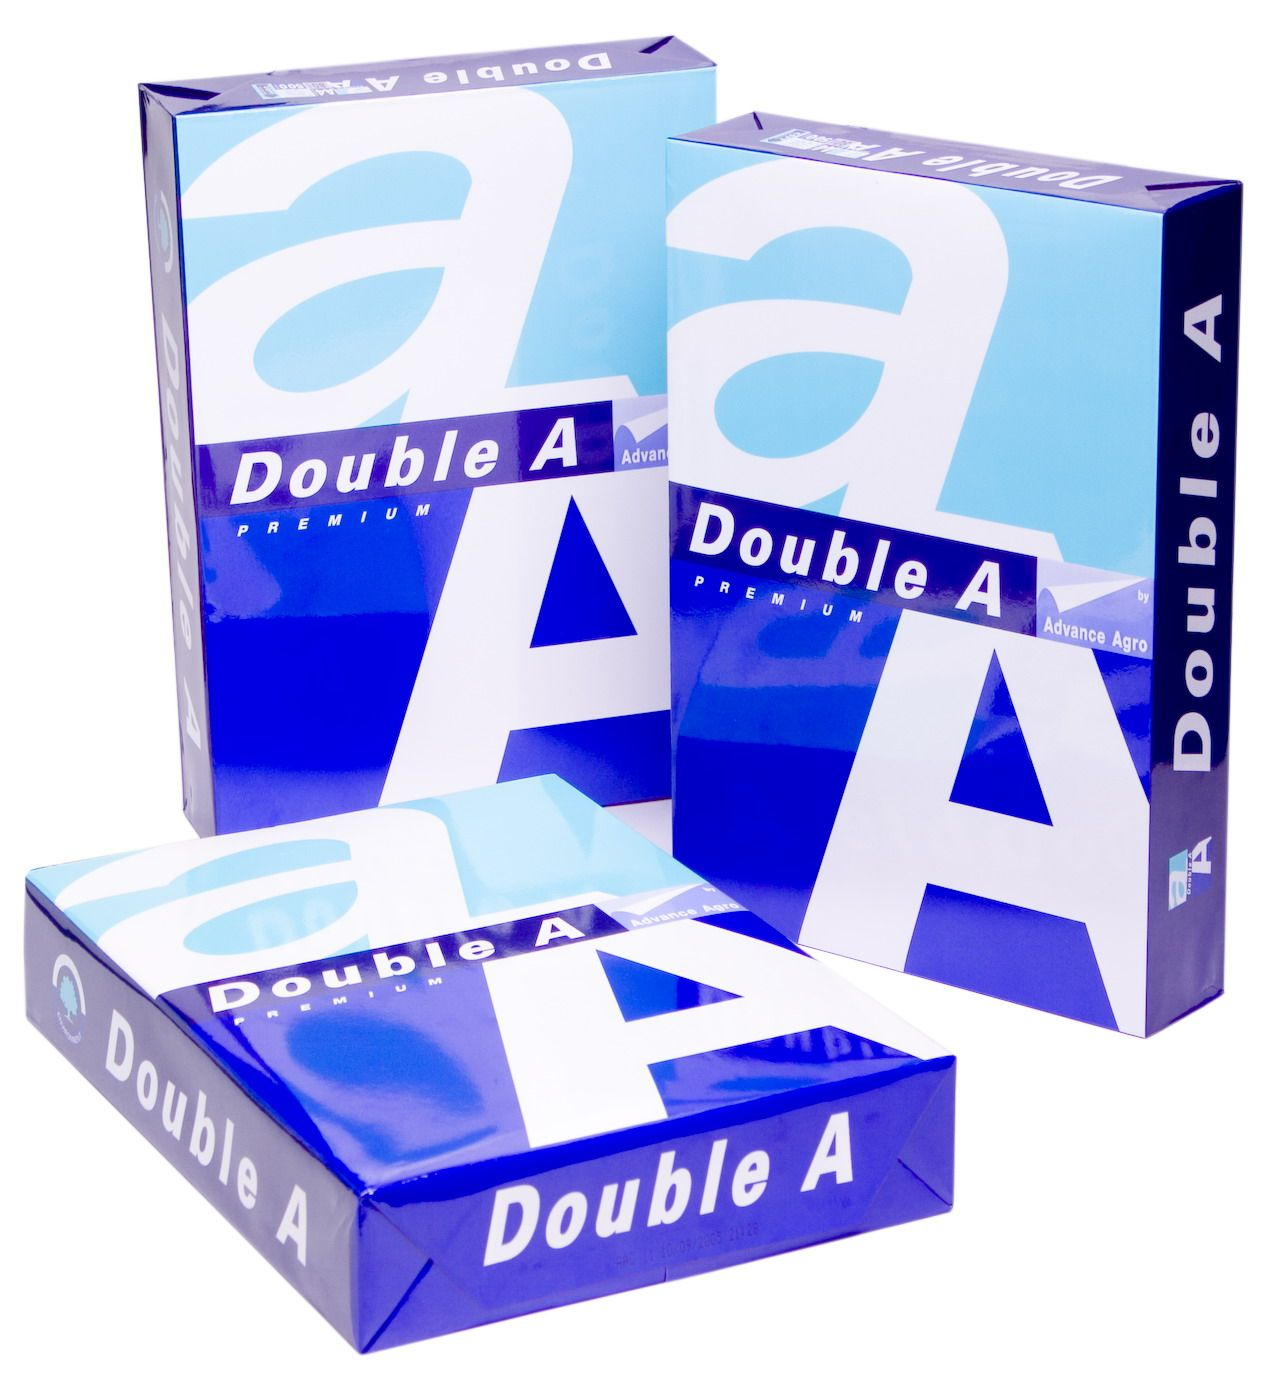 Double a4 Office copy paper